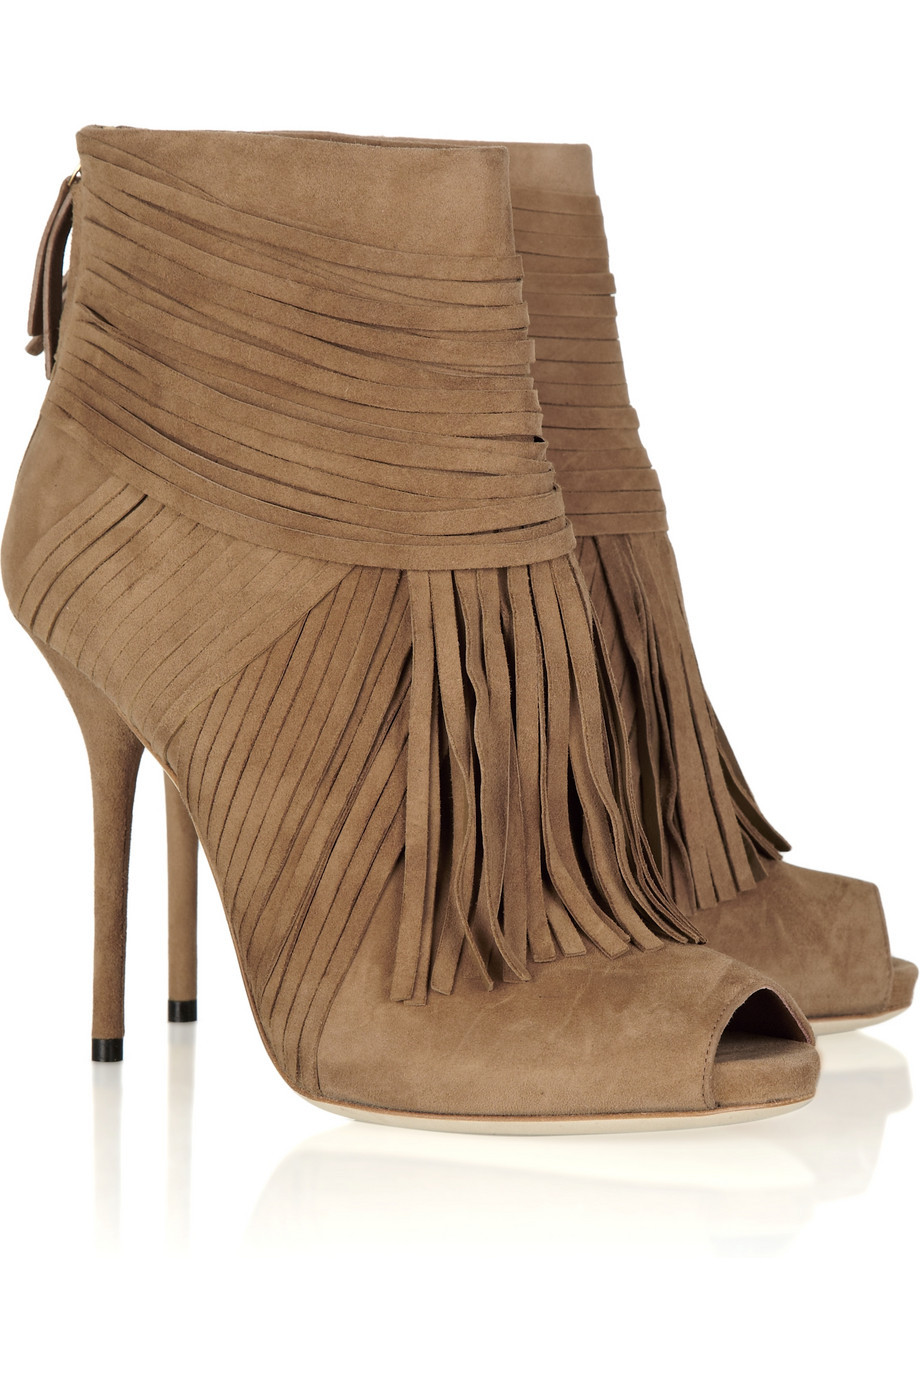 a18c0a2c8345 Get Quotations · 2015 Newest Sexy Peep Toe Suede Fringed Ankle Boots Woman  Designer High Heel Boots Autumn Fashion